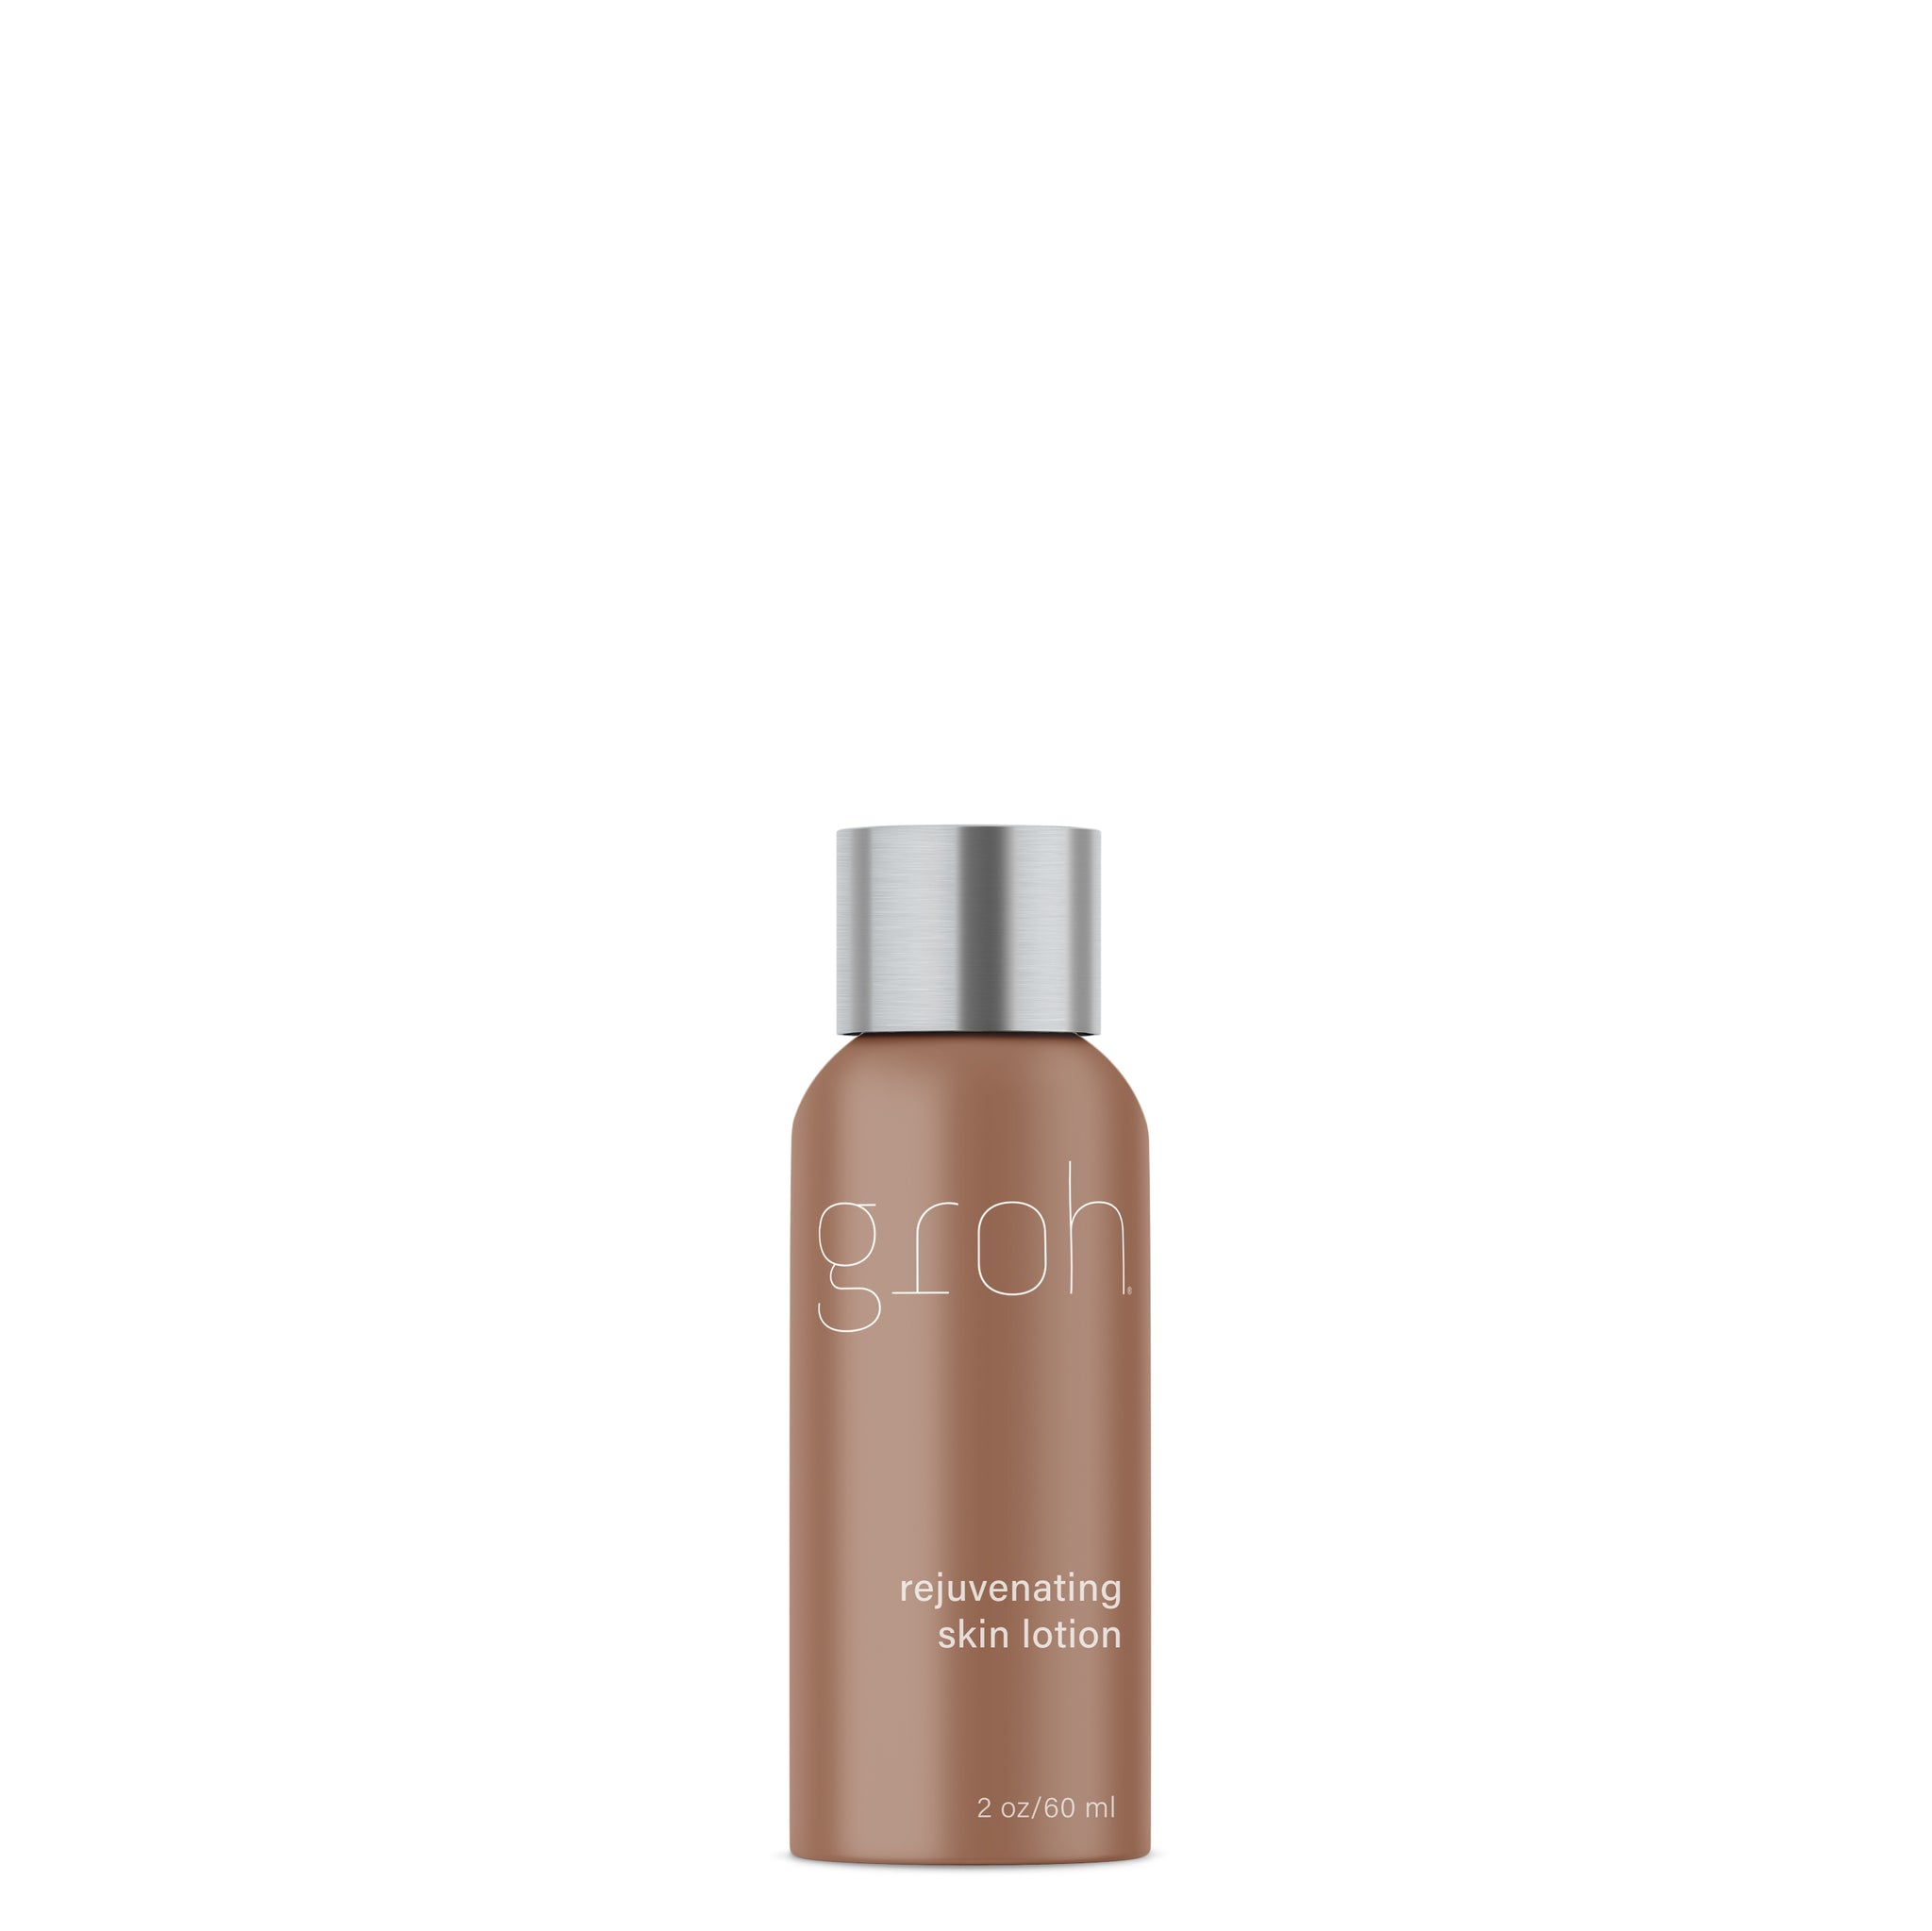 Groh® Rejuvenating Skin Lotion